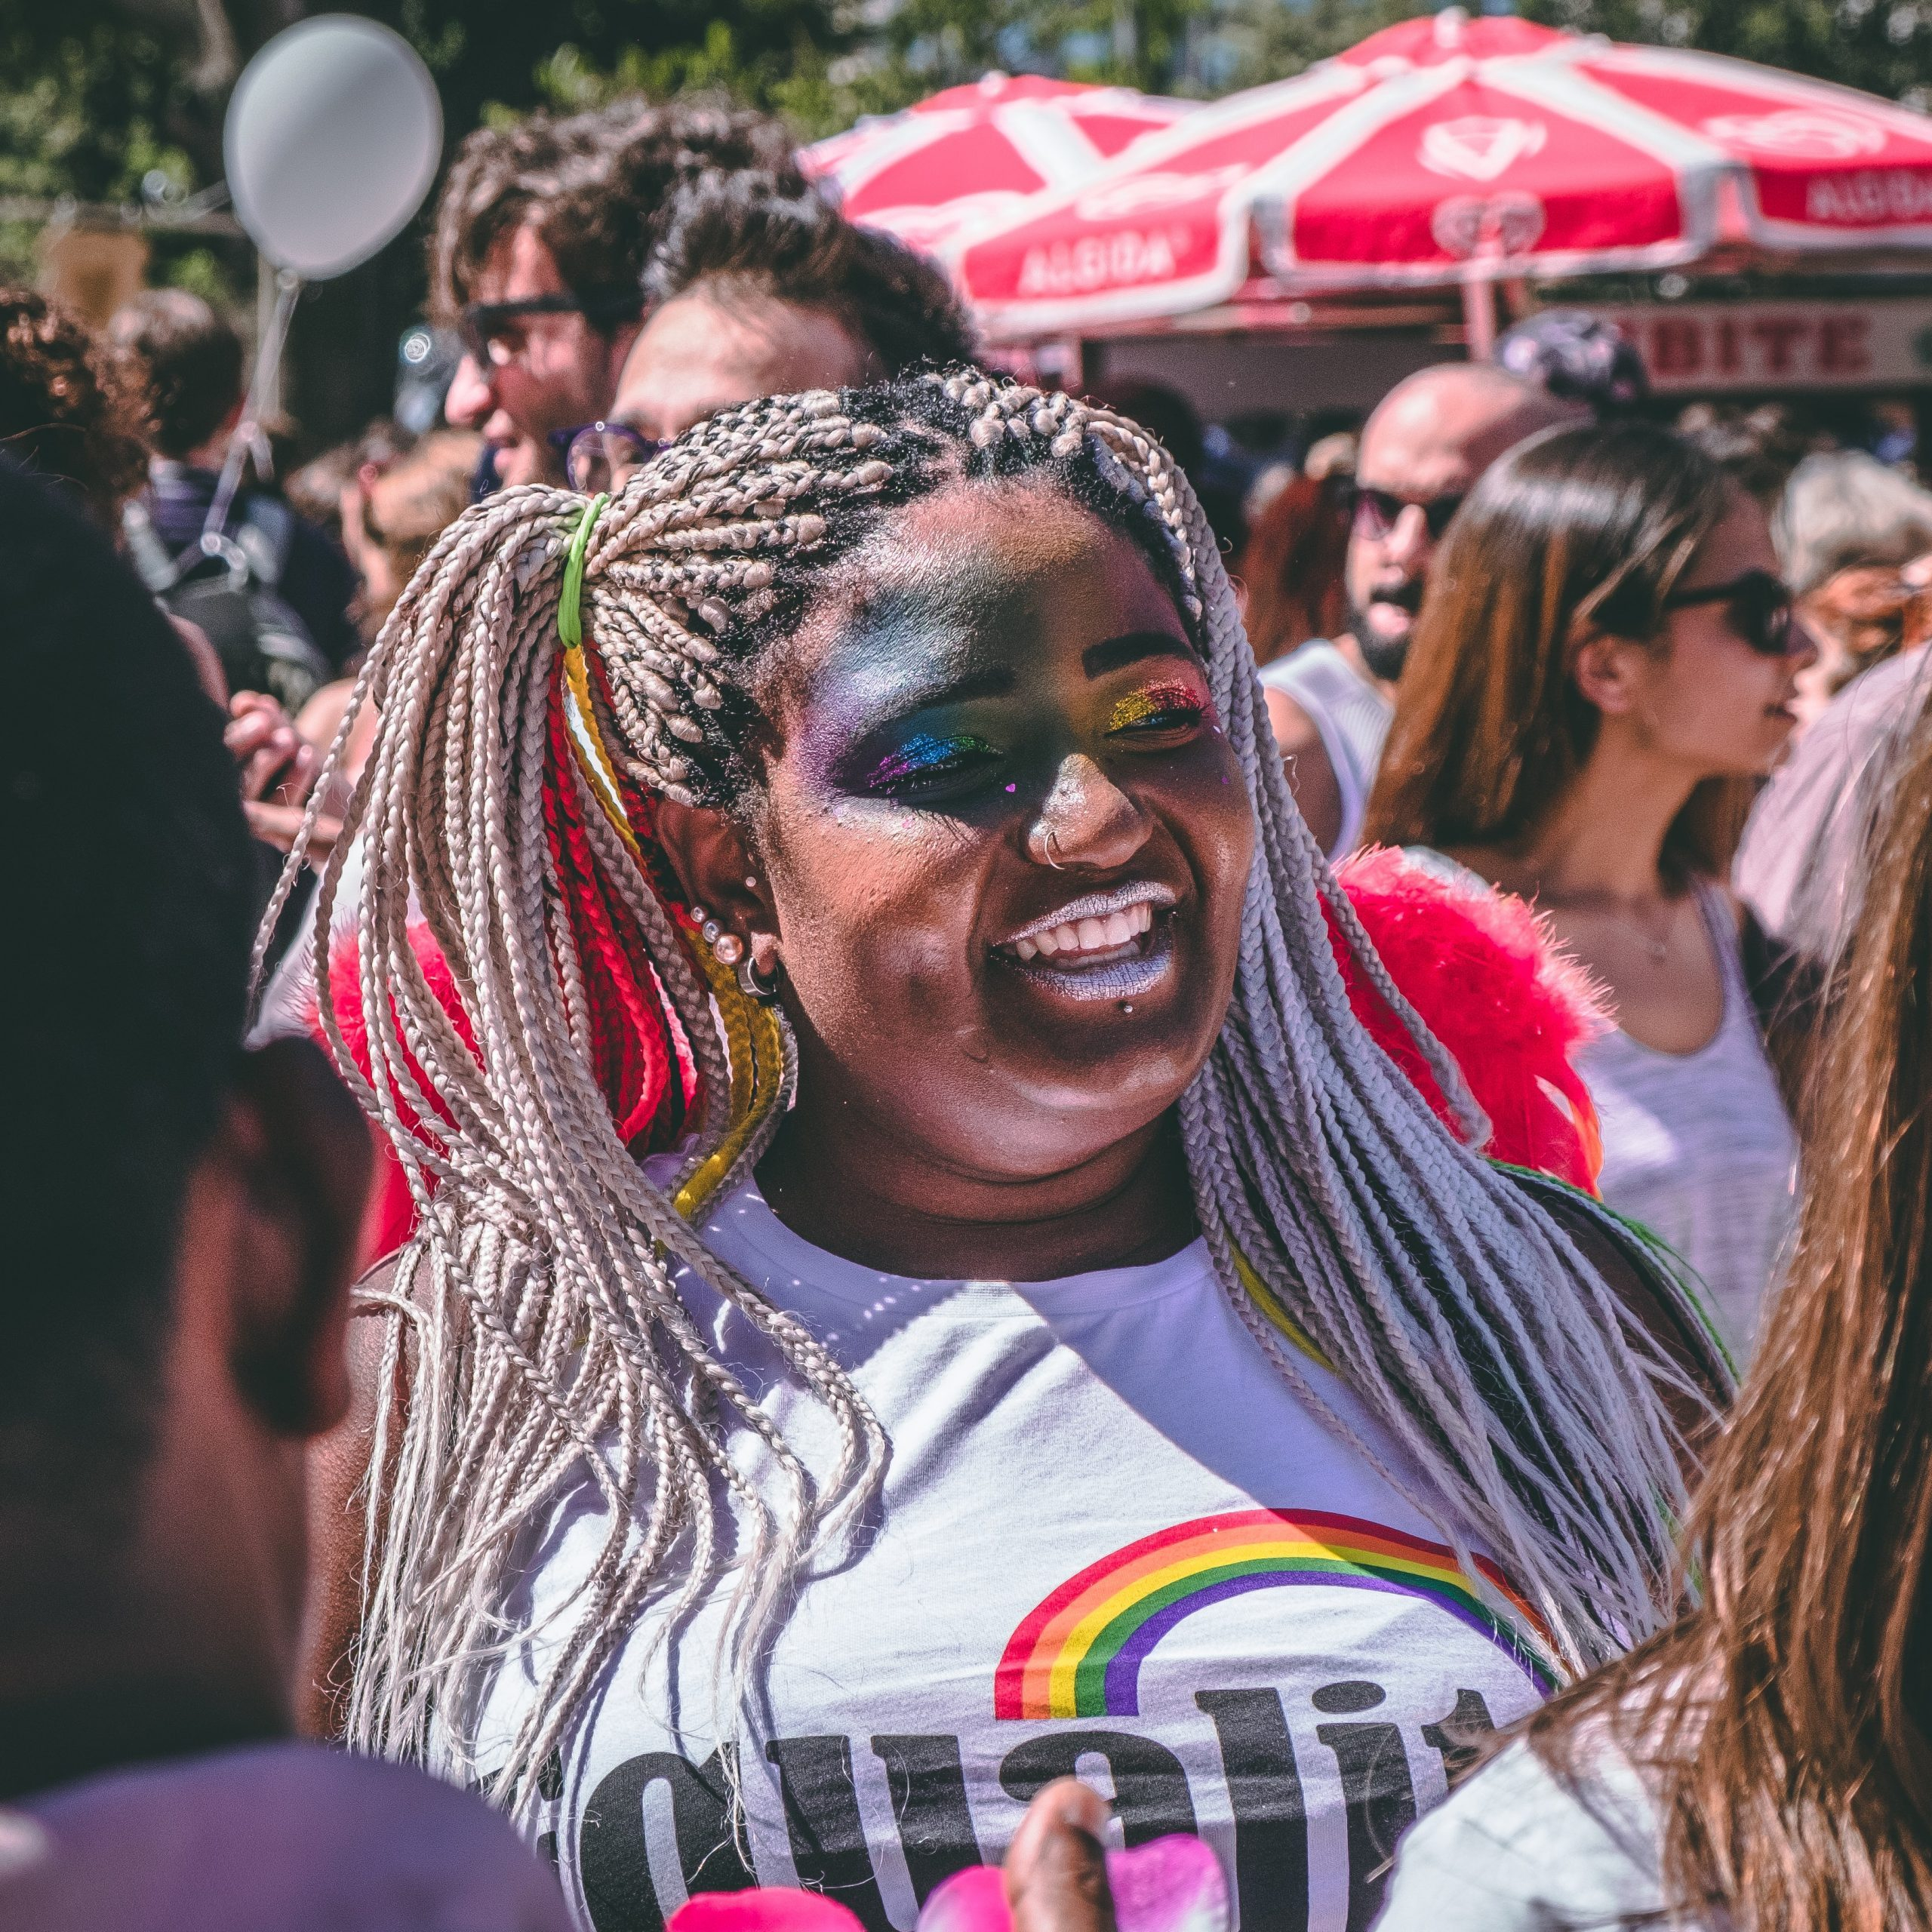 A girl in a crowd wears rainbow glitter makeup